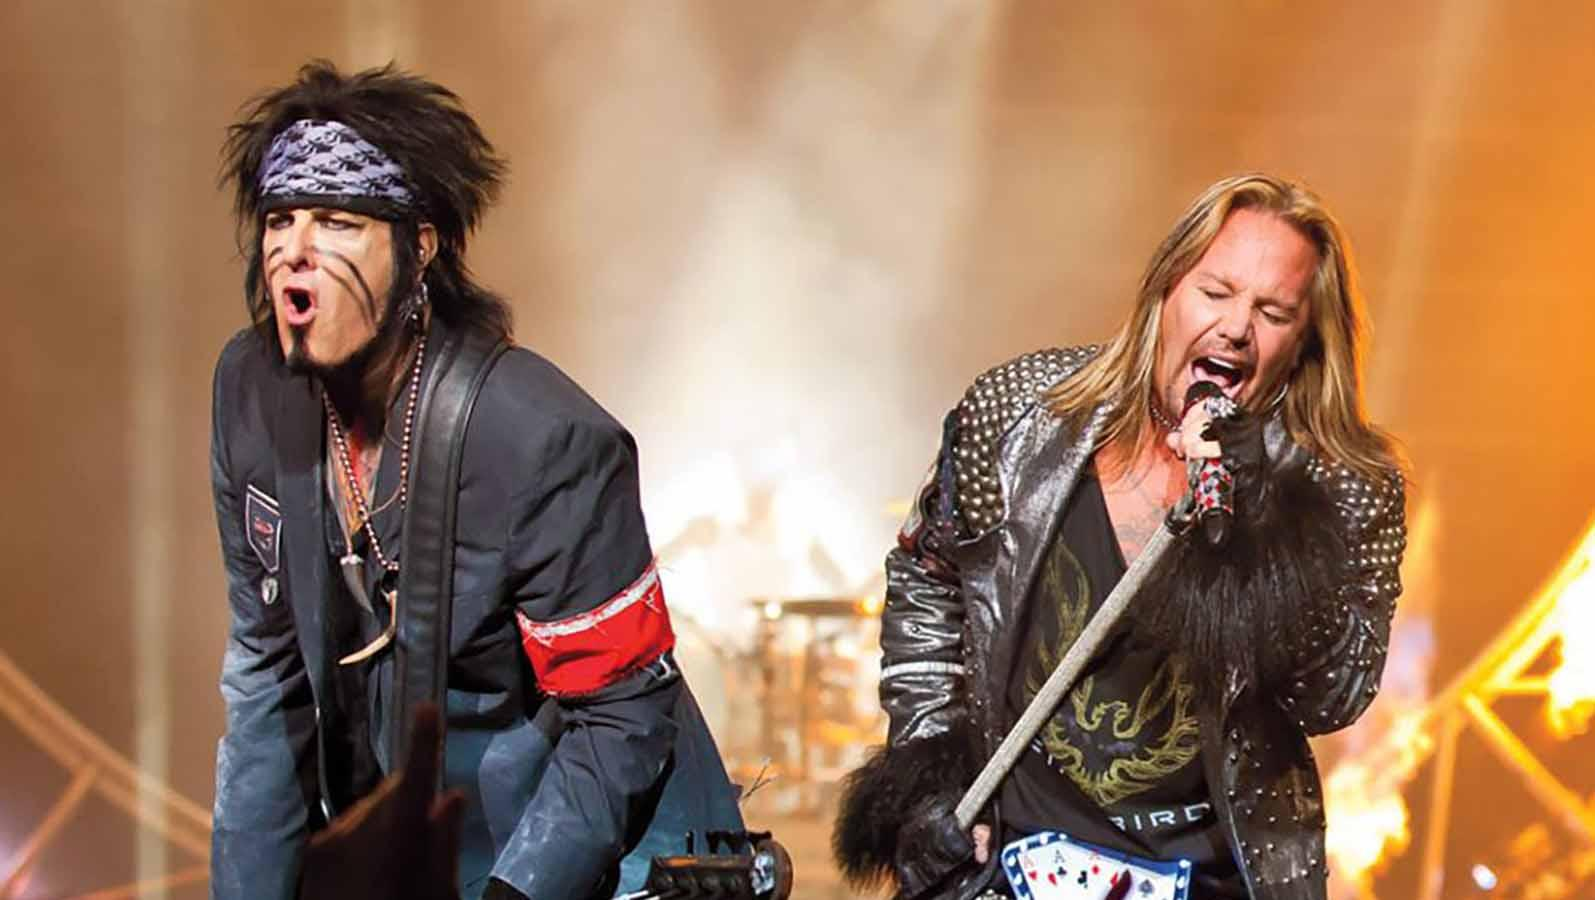 Motley Crue and Def Leppard with Poison